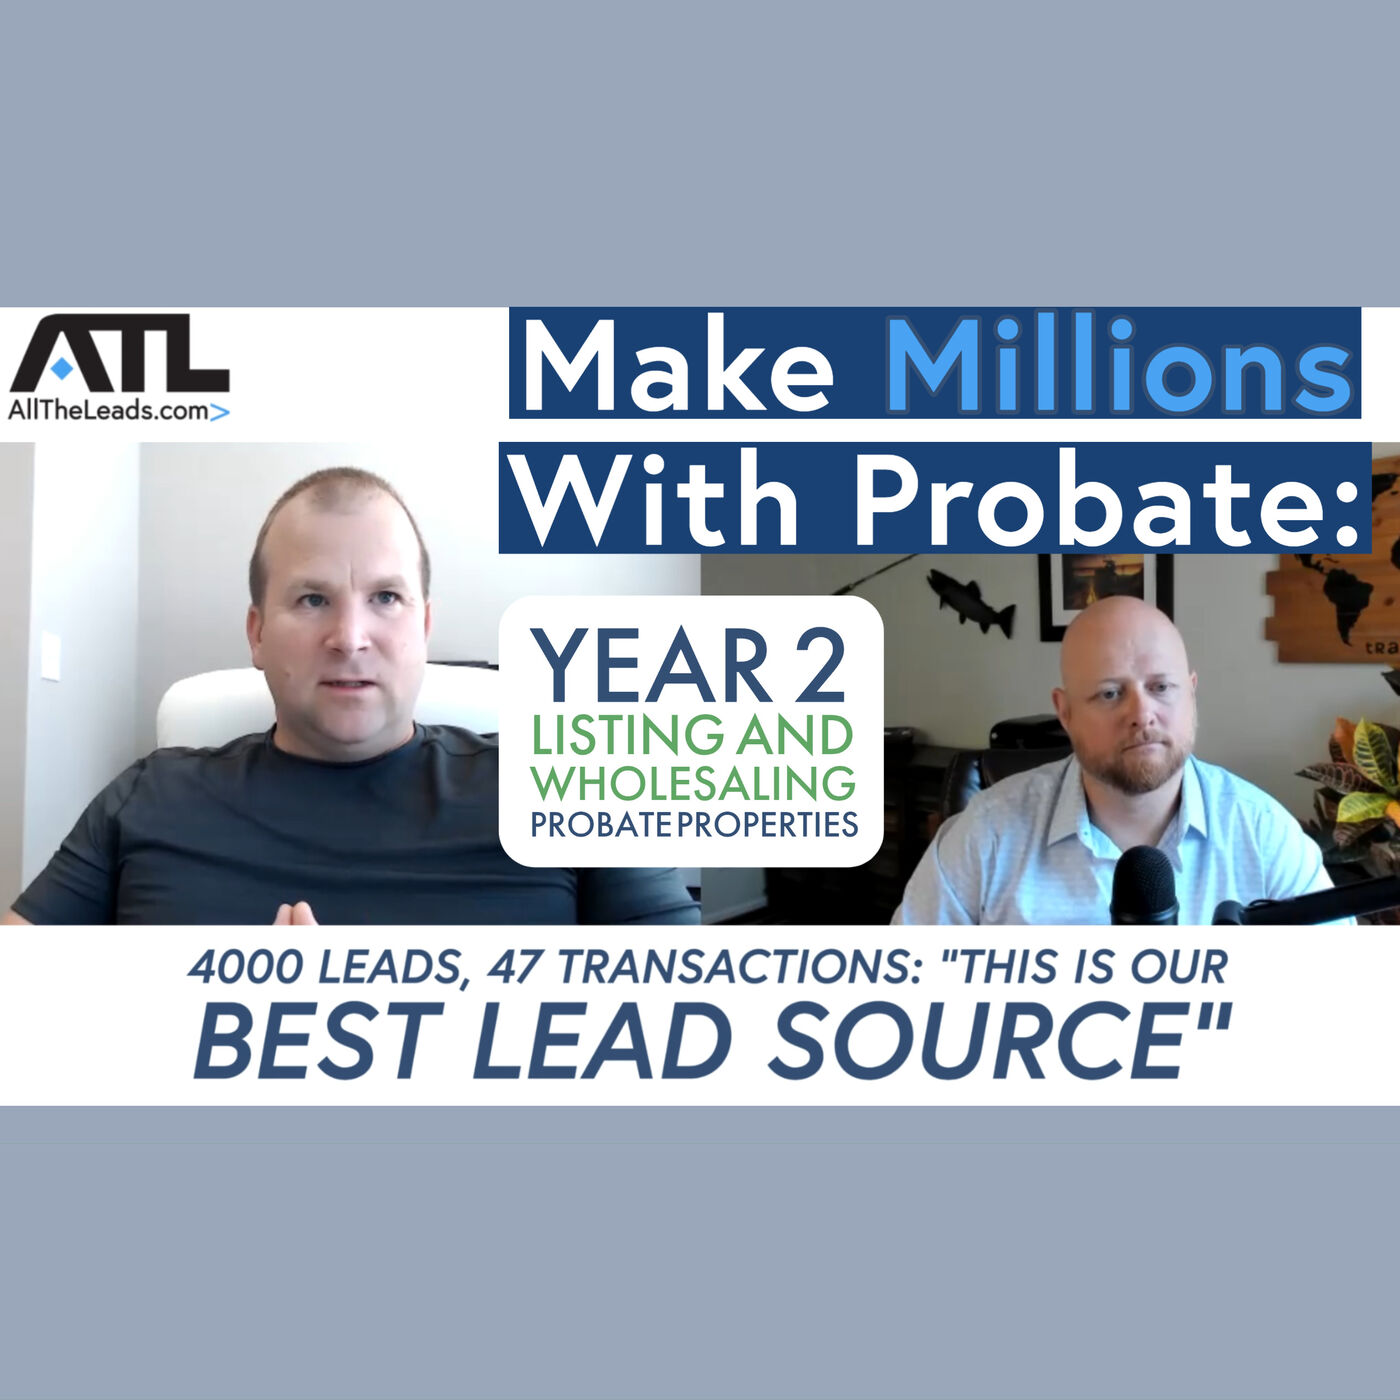 Million-Dollar Producer Shares Updates on Year 2 Listing and Wholesaling Probate Real Estate